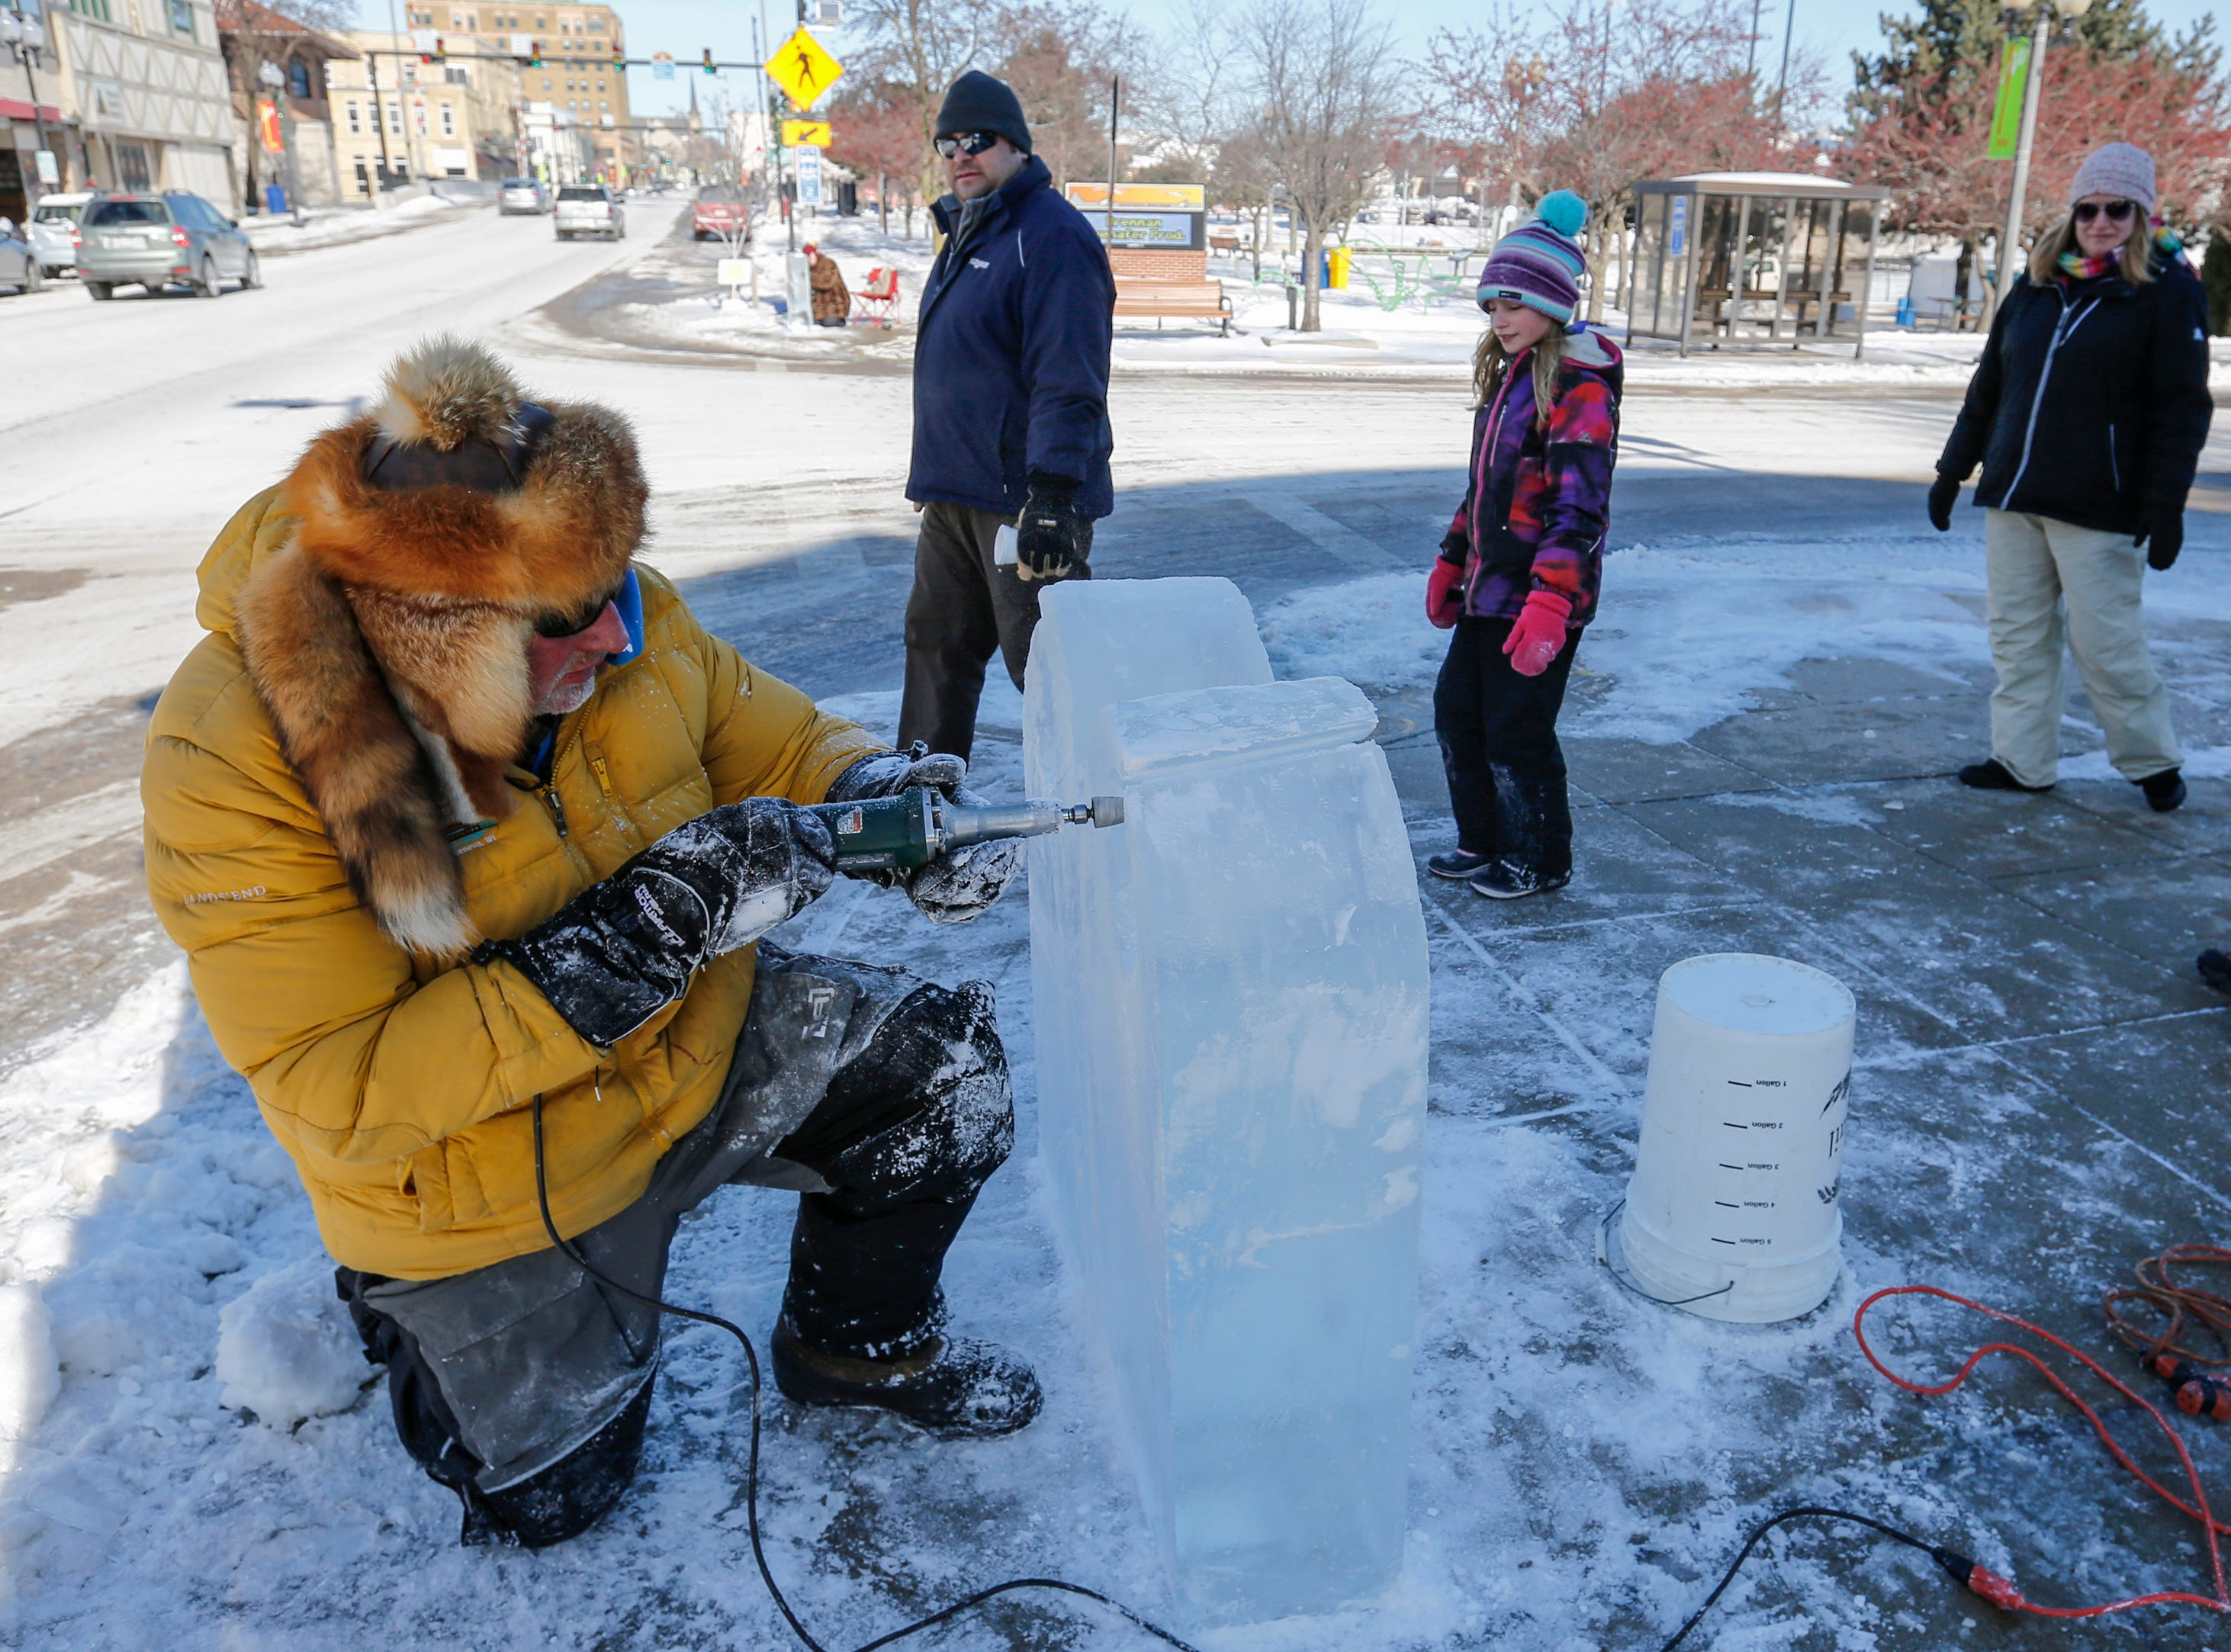 Passersby watch Tom Queoff, of Milwaukee, work on his ice sculpture during Winter Fest Saturday, February 9, 2019, in Manitowoc, Wis. Joshua Clark/USA TODAY NETWORK-Wisconsin